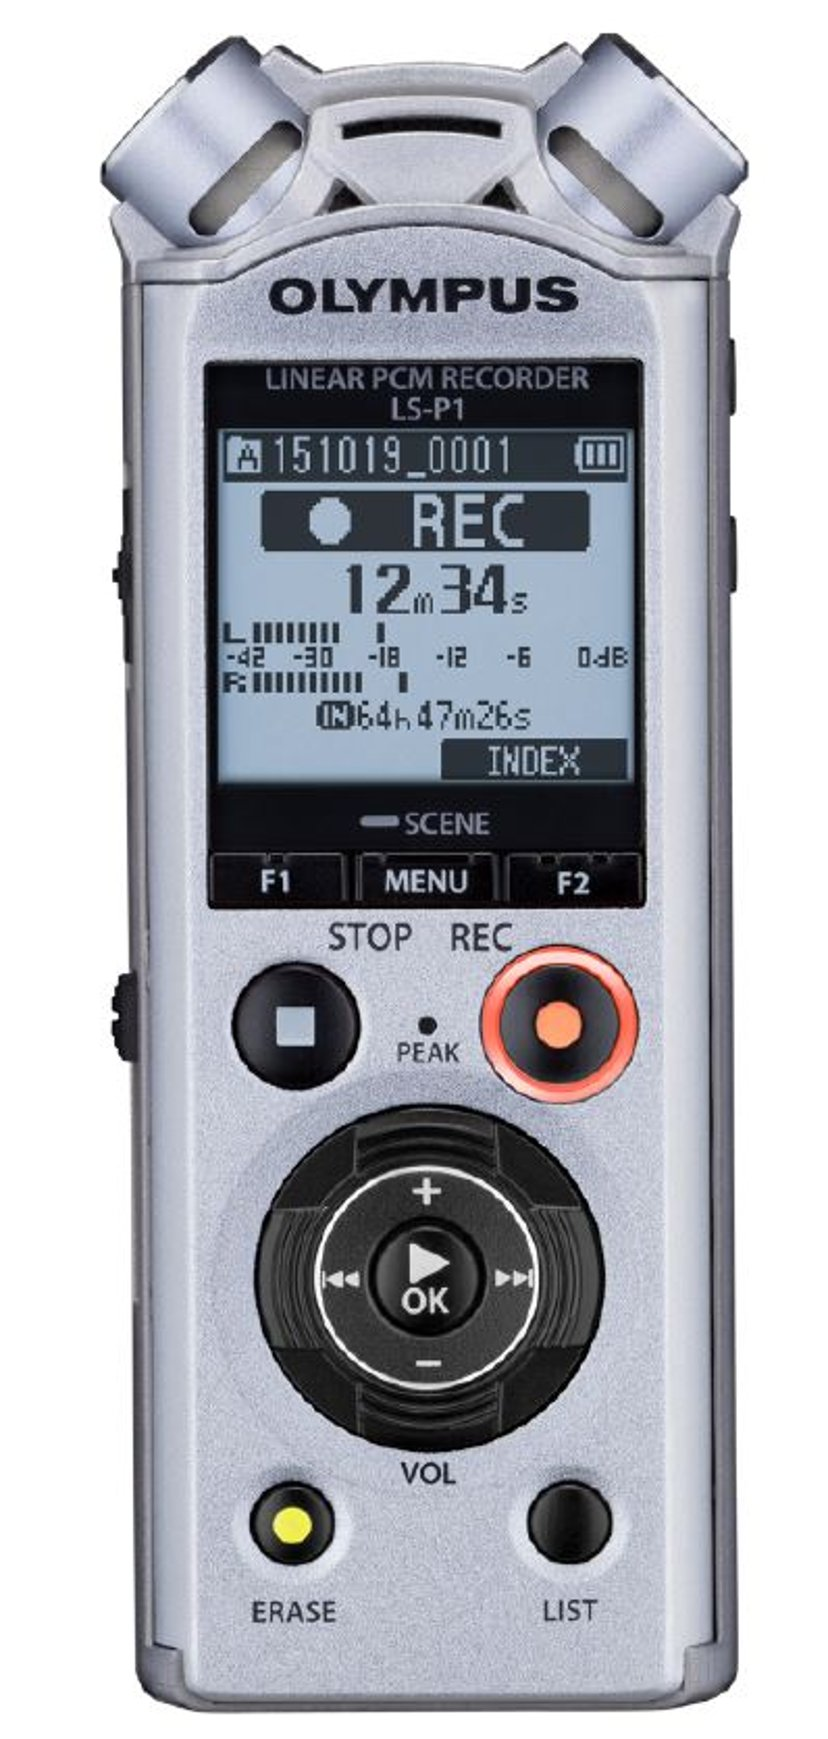 Olympus LS-P1 PCM Recorder Incl NiMh Battery